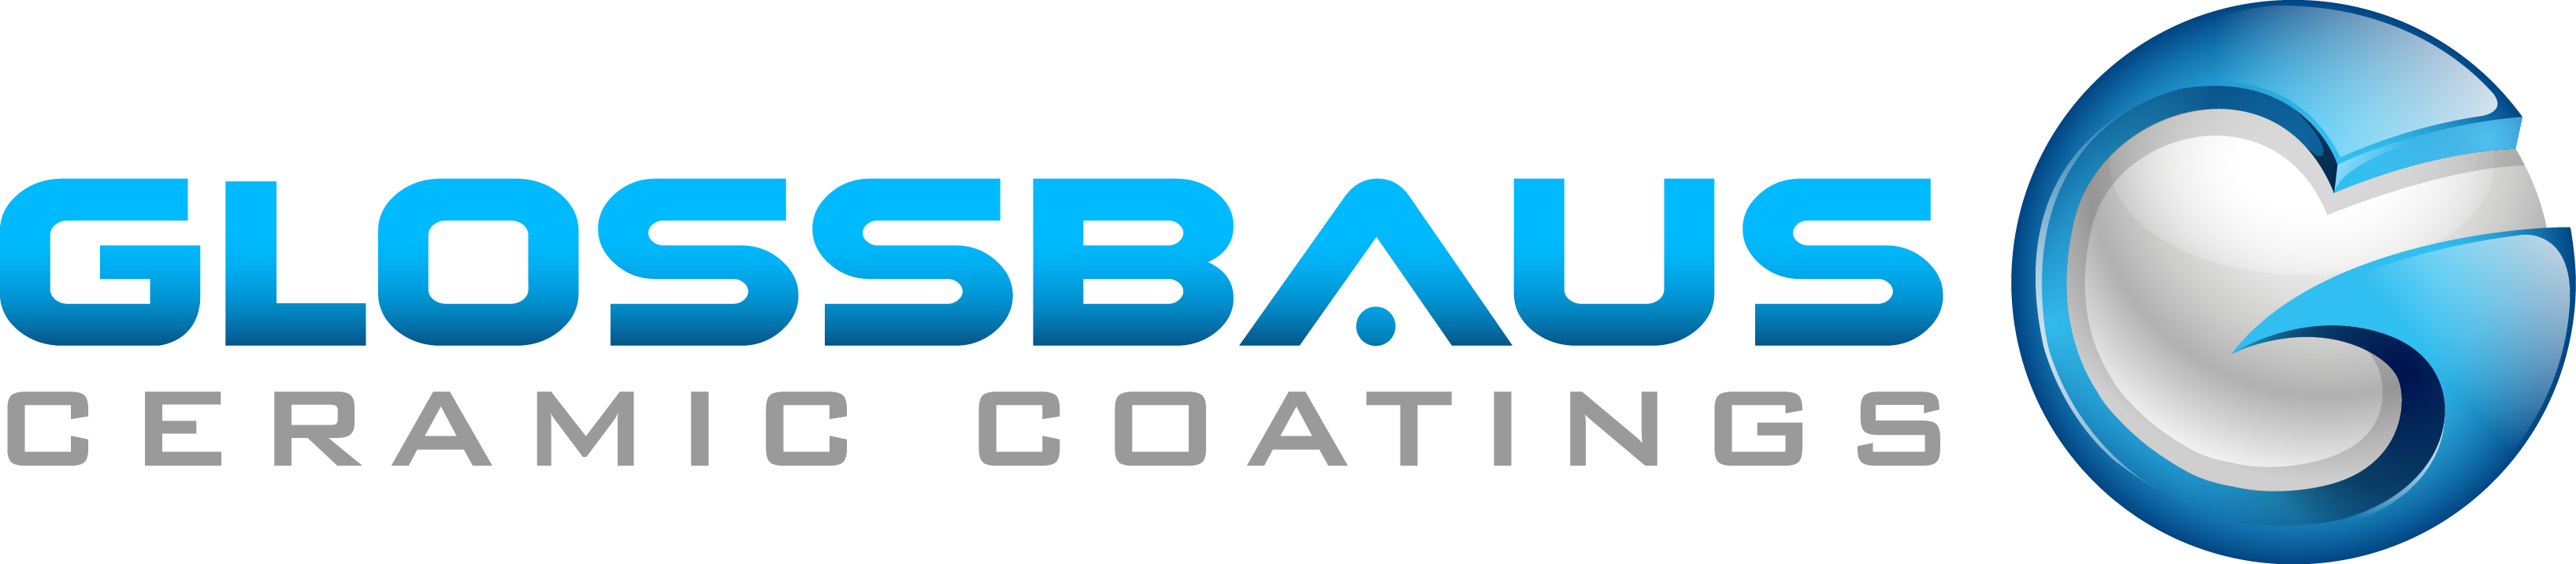 Best Hydrophobic Ceramic Paint Coating Protection for Cars   GLOSSBAUS